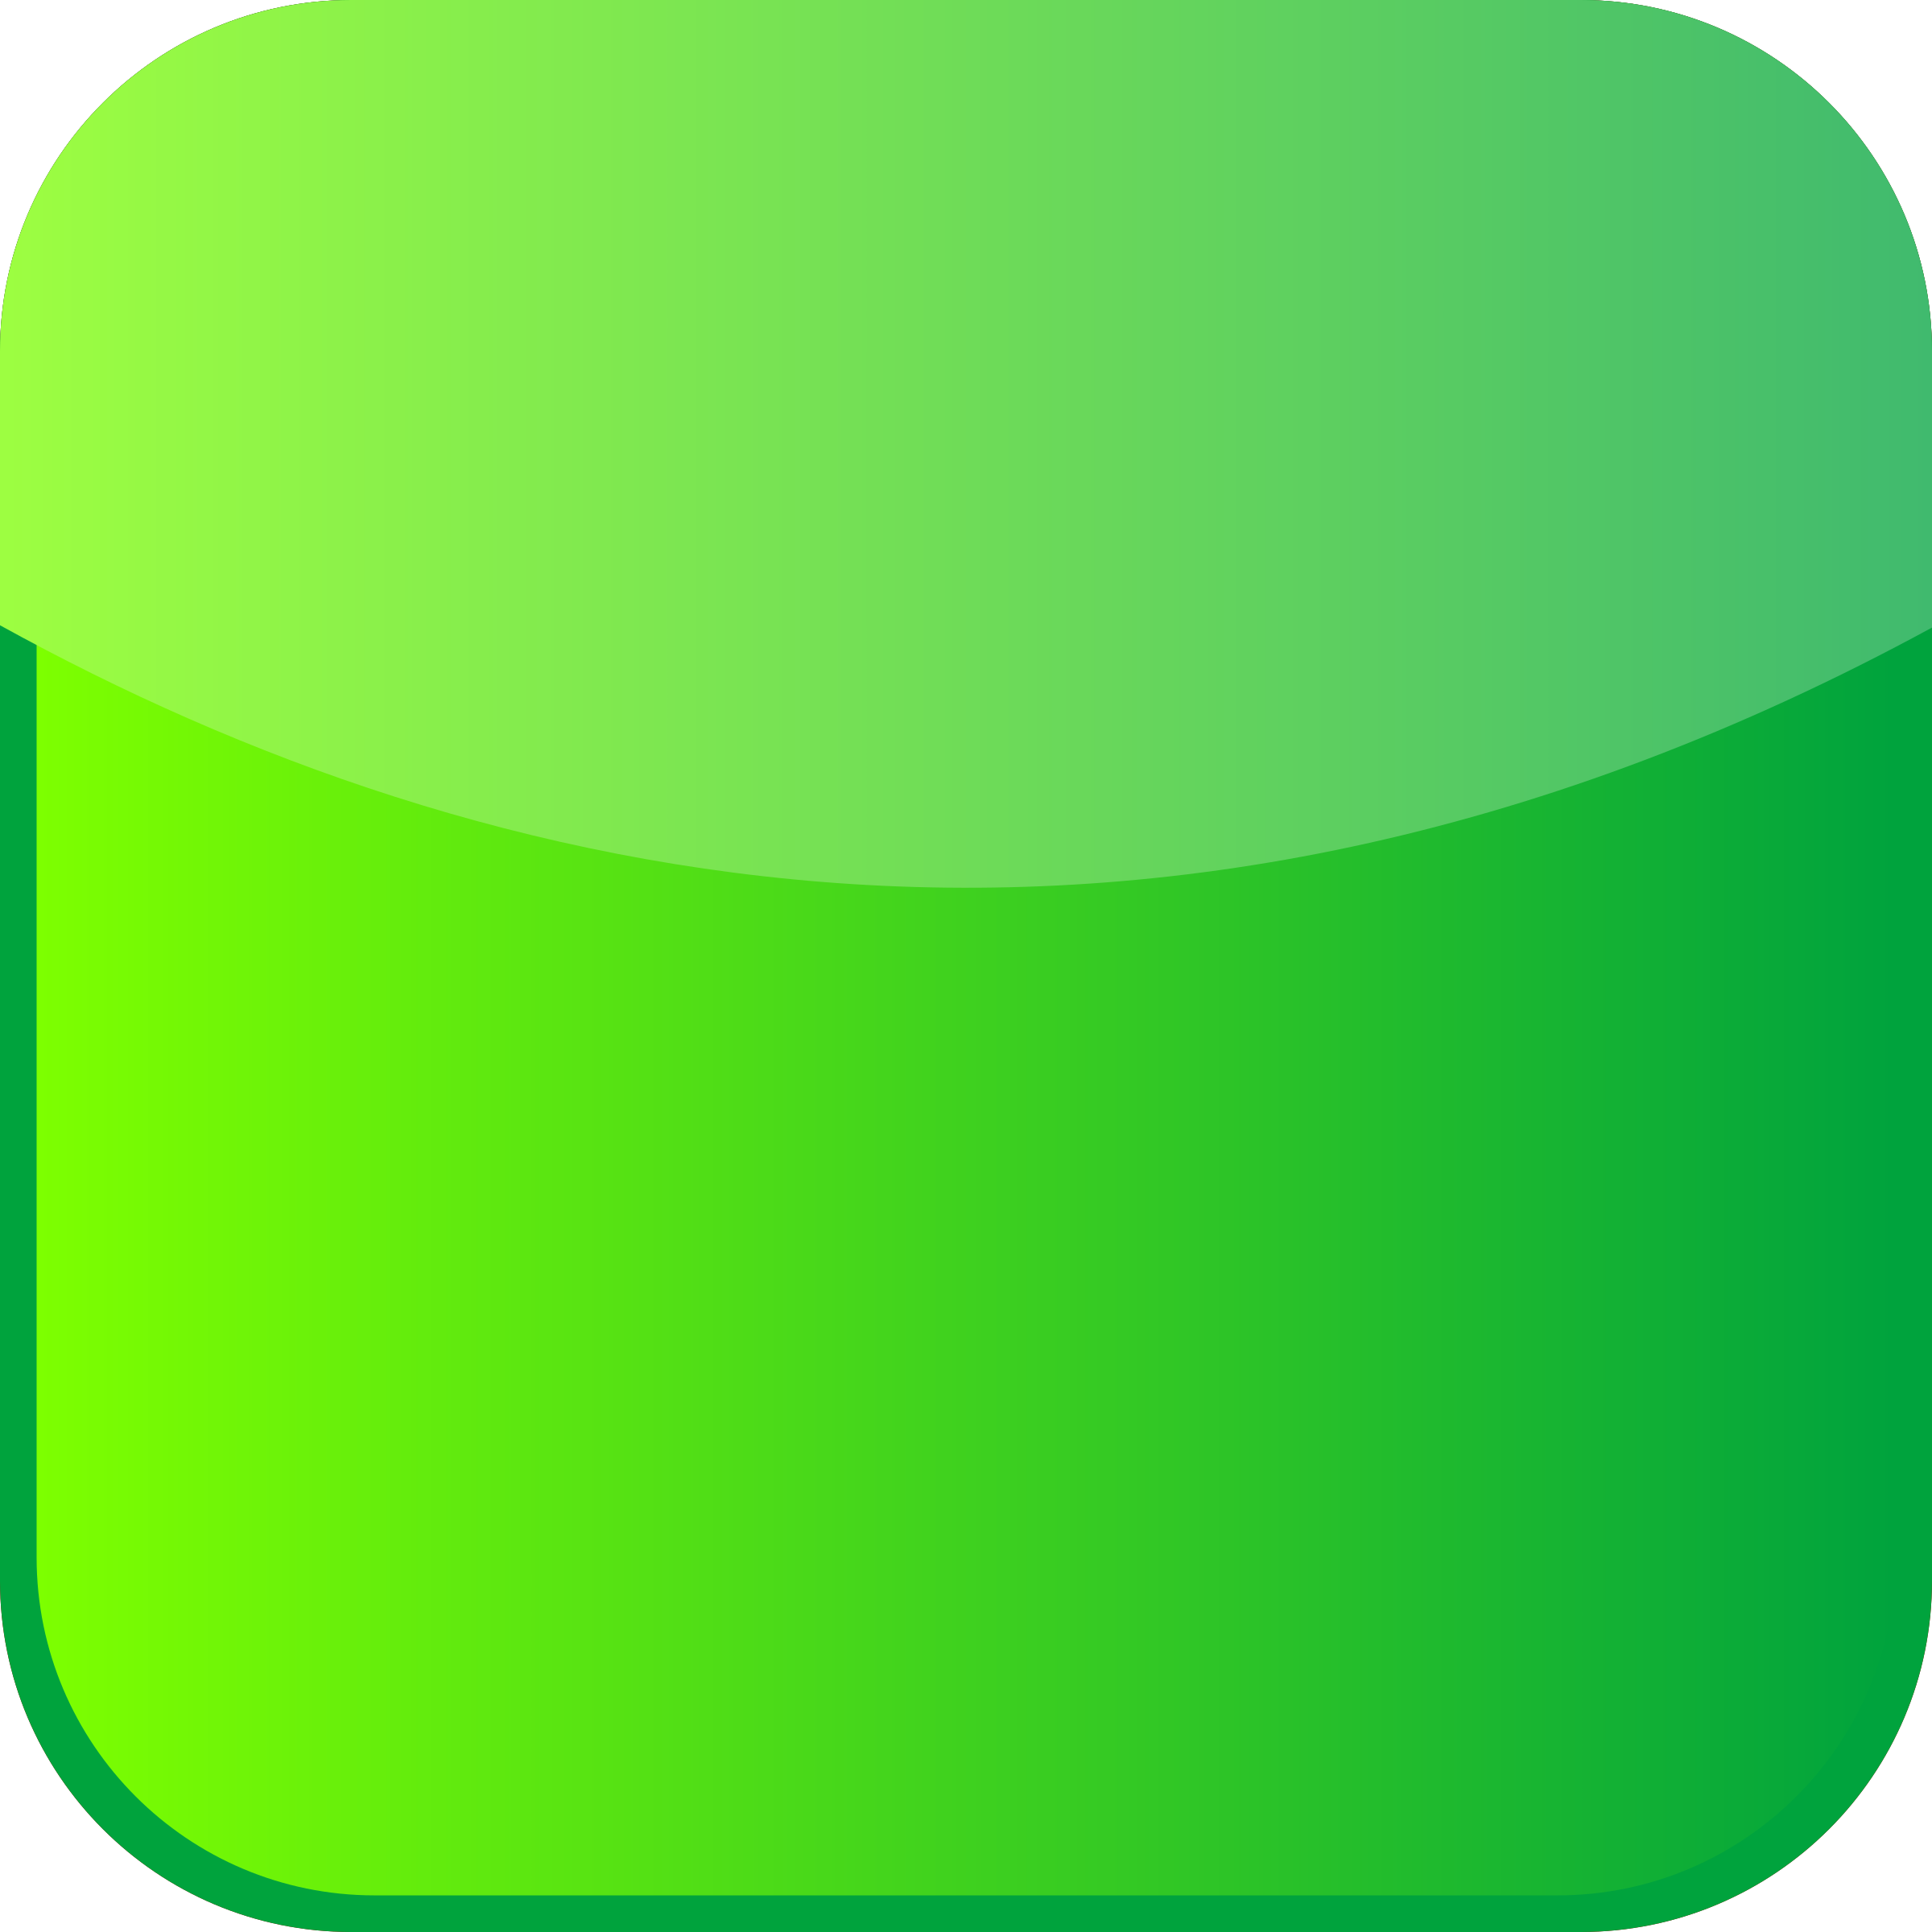 icon green by shokunin